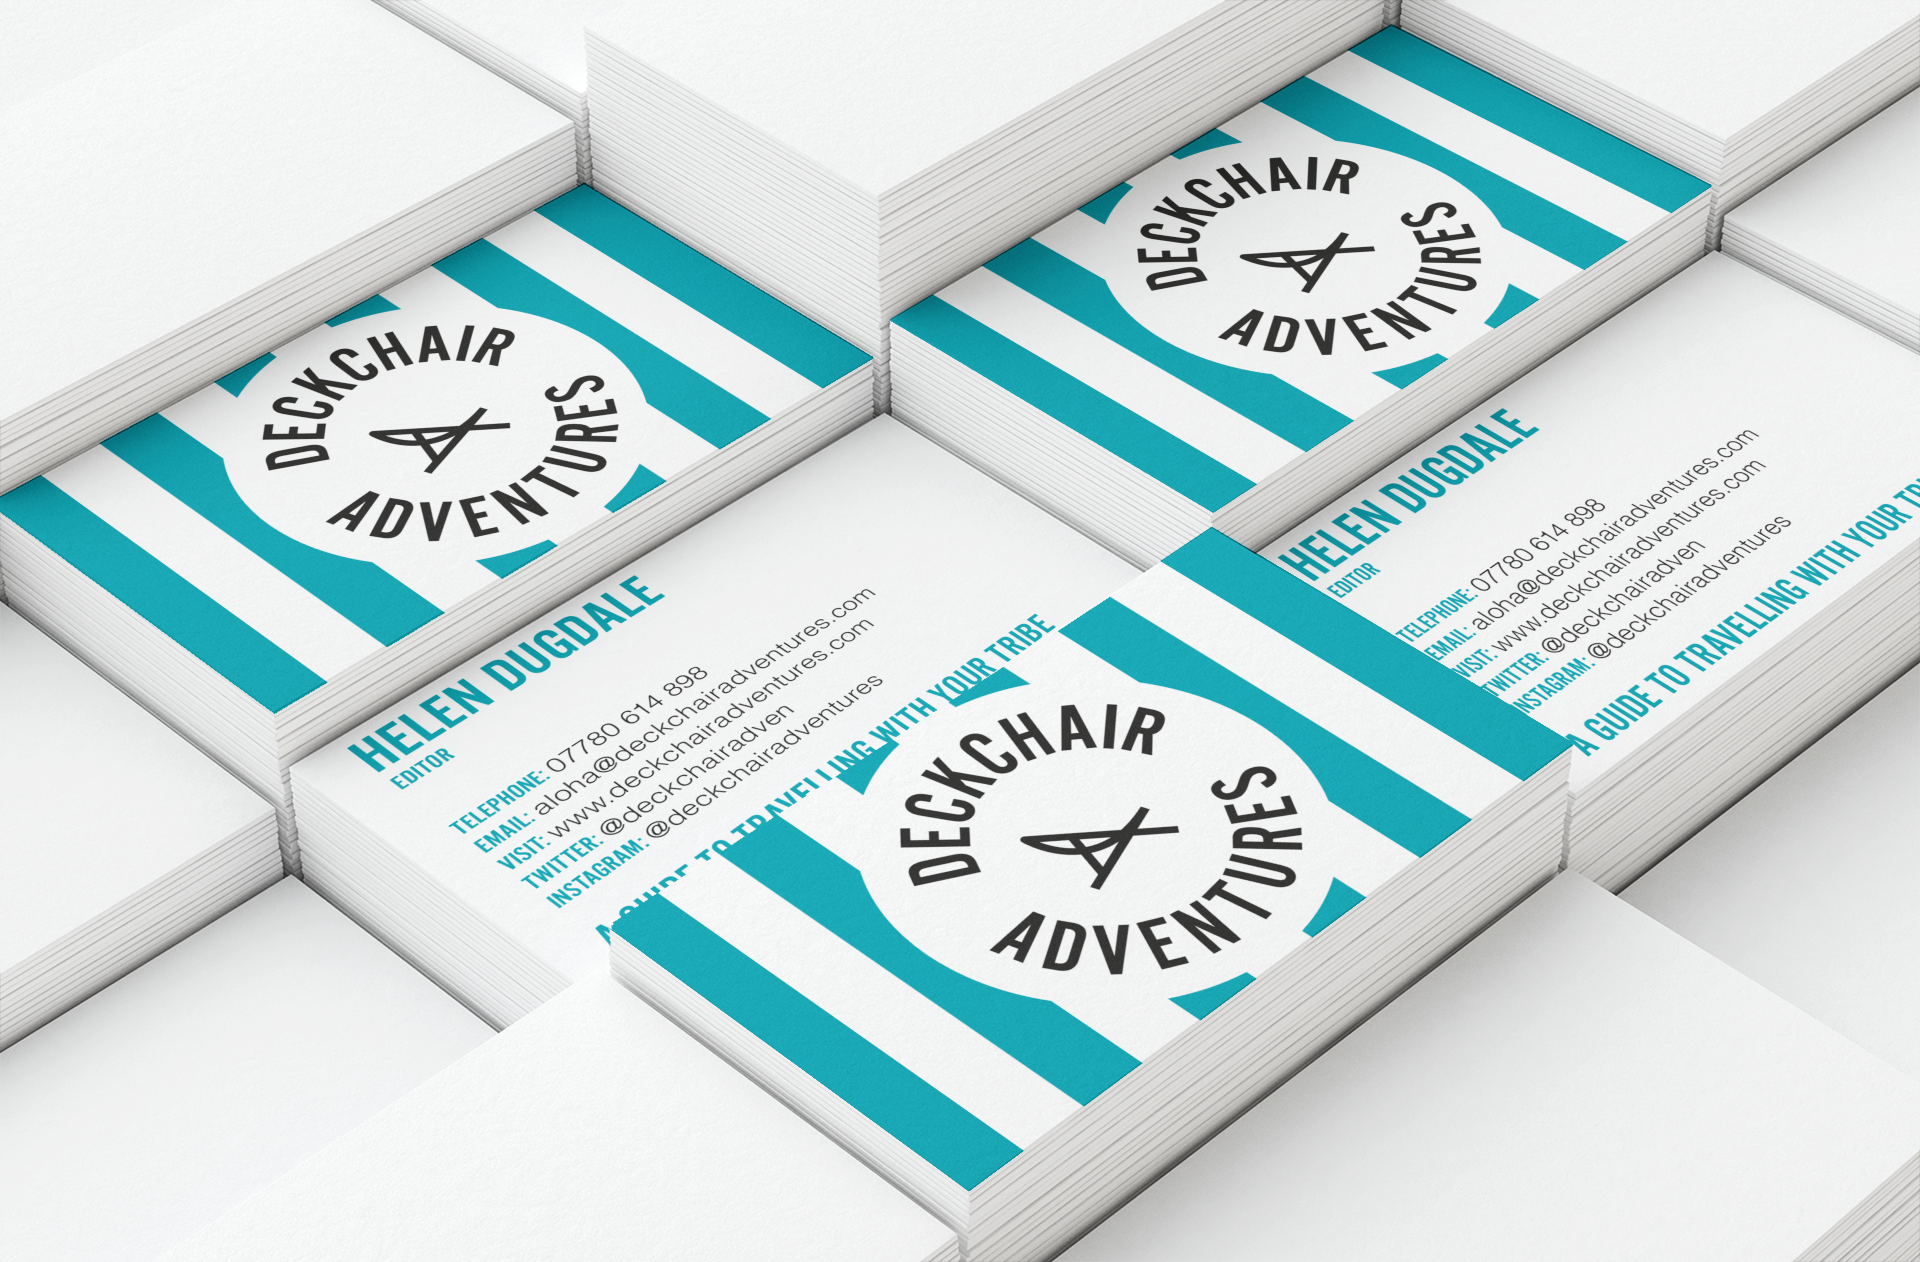 Travel company branding